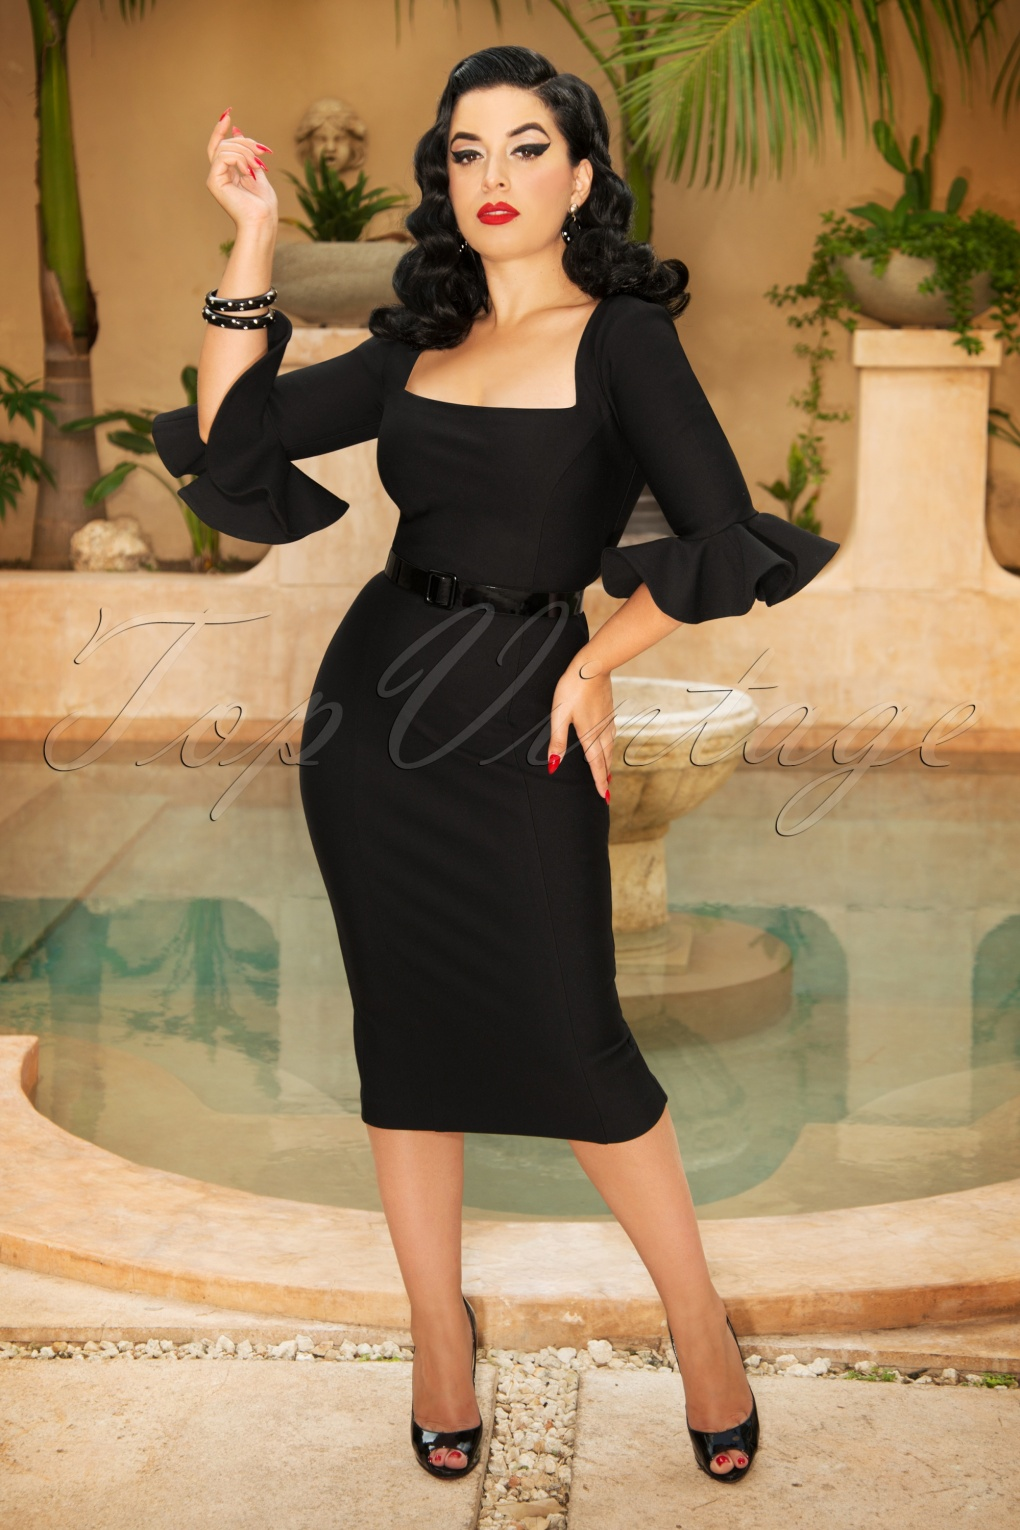 1950s Prom Dresses & Party Dresses The Fay Pencil Dress in Black £109.51 AT vintagedancer.com